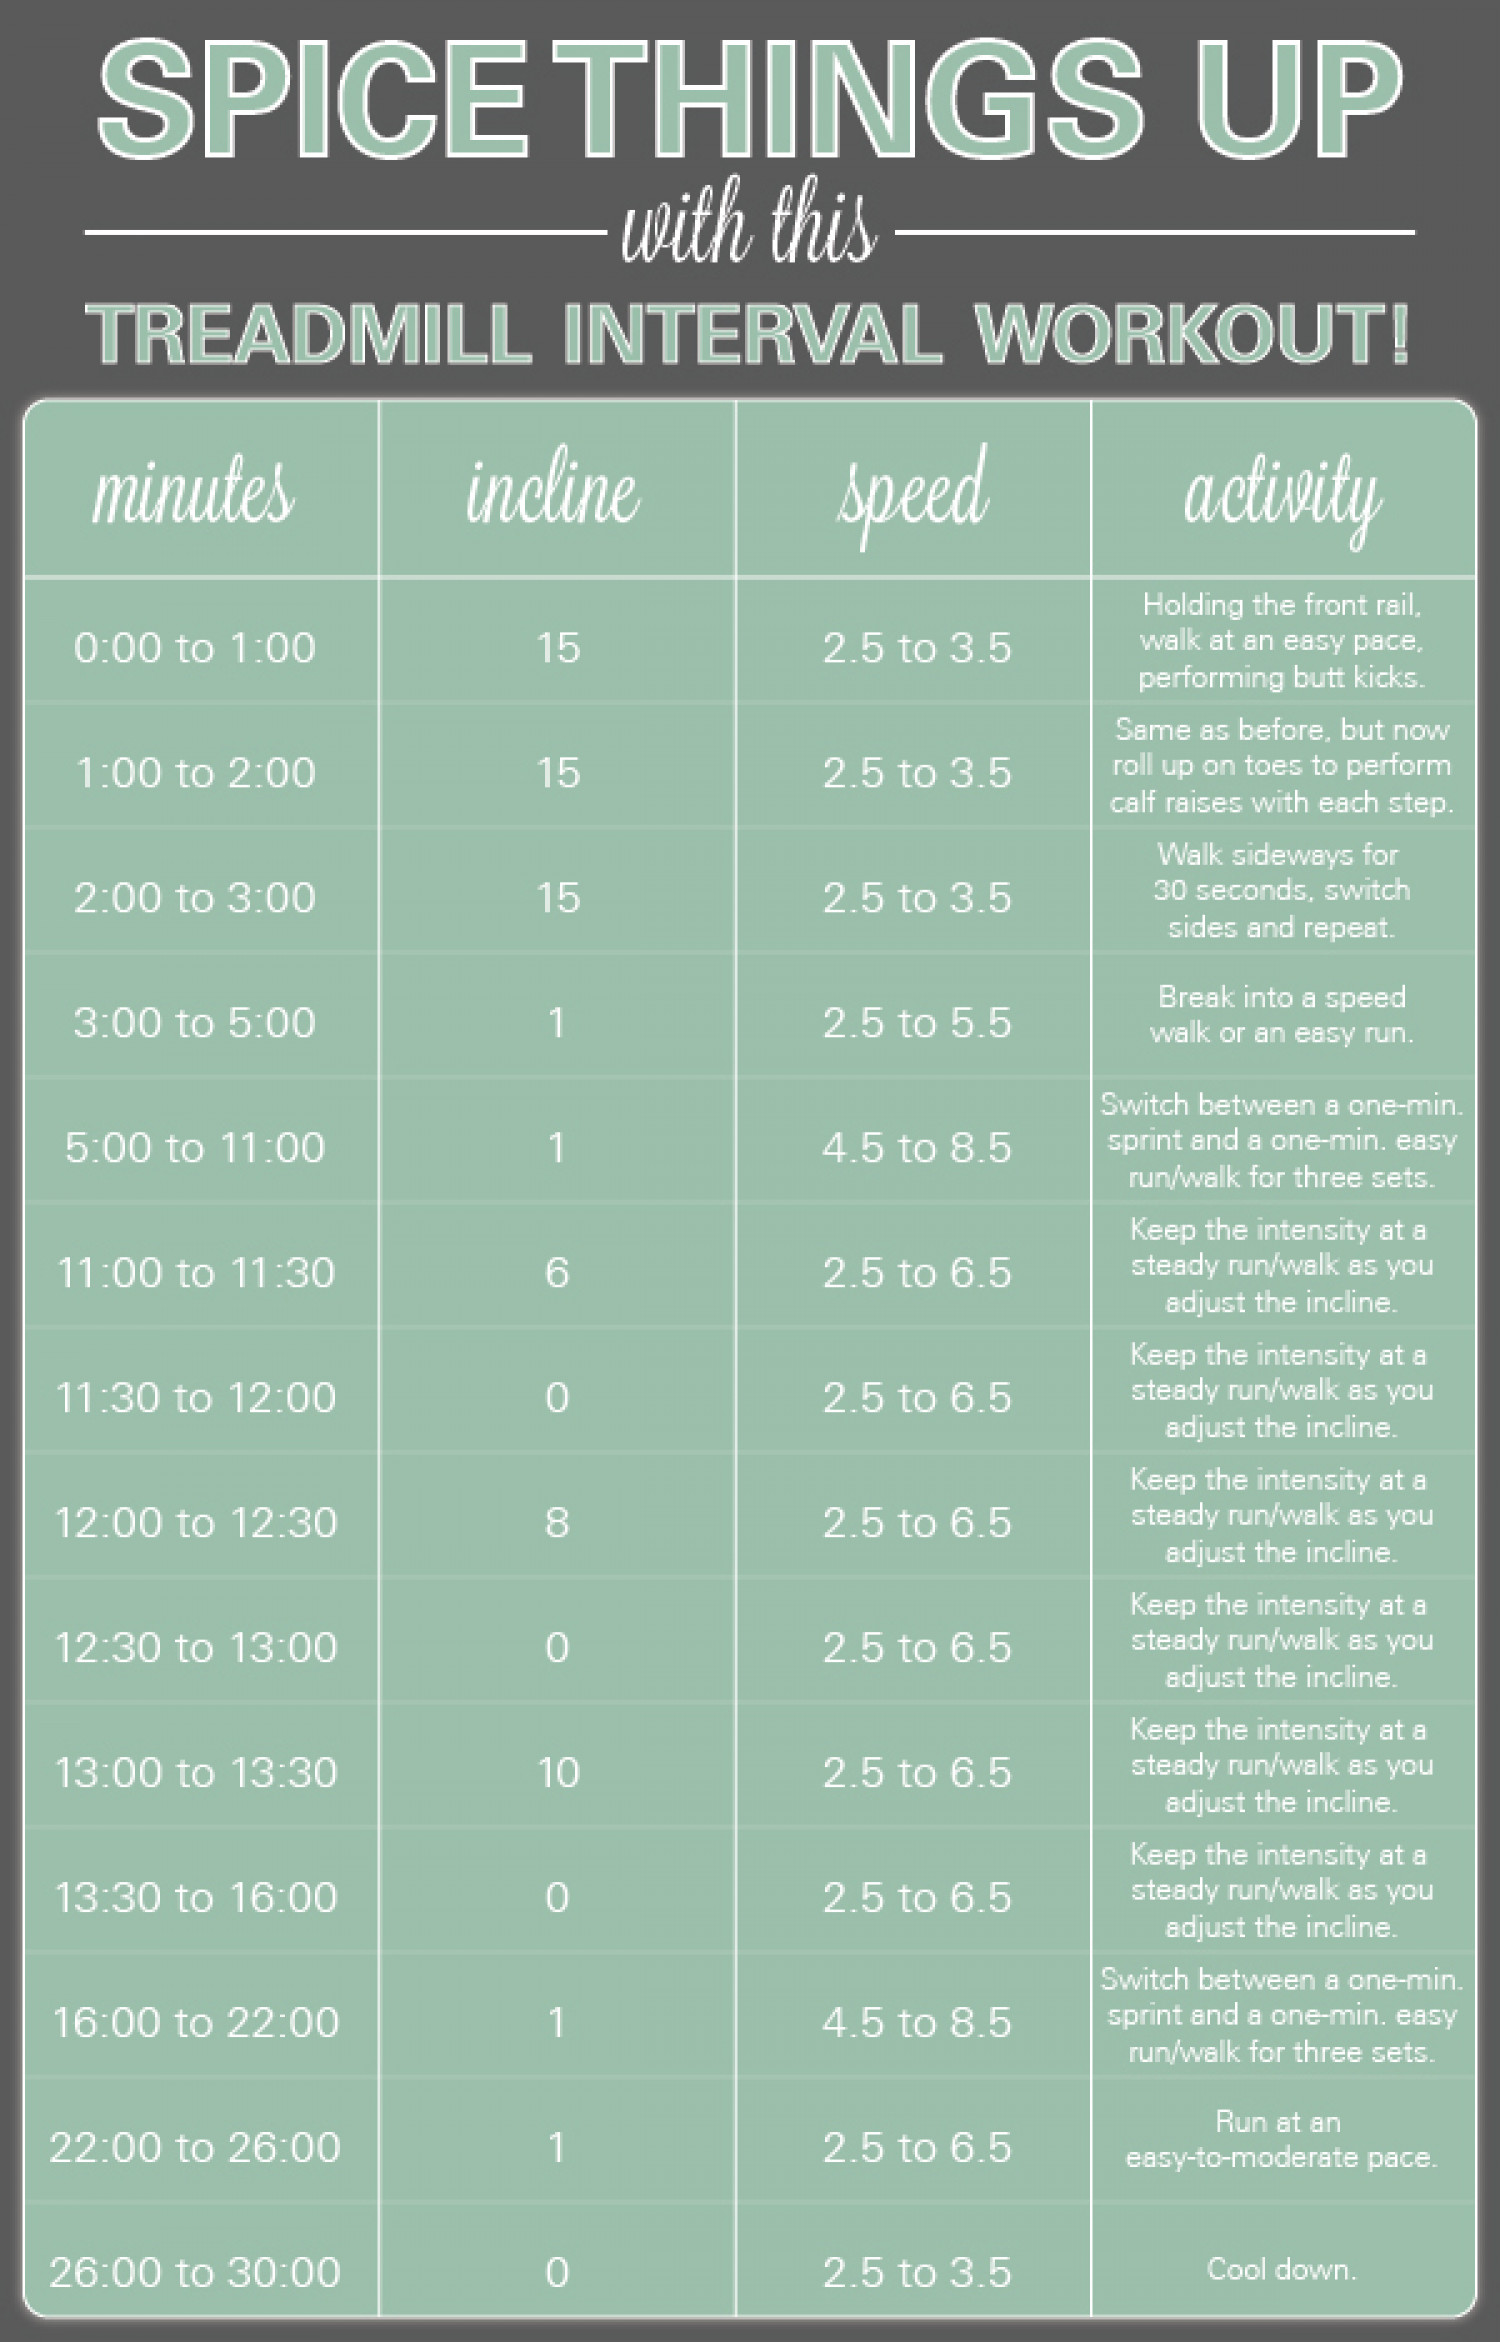 Treadmill Interval Workout Infographic